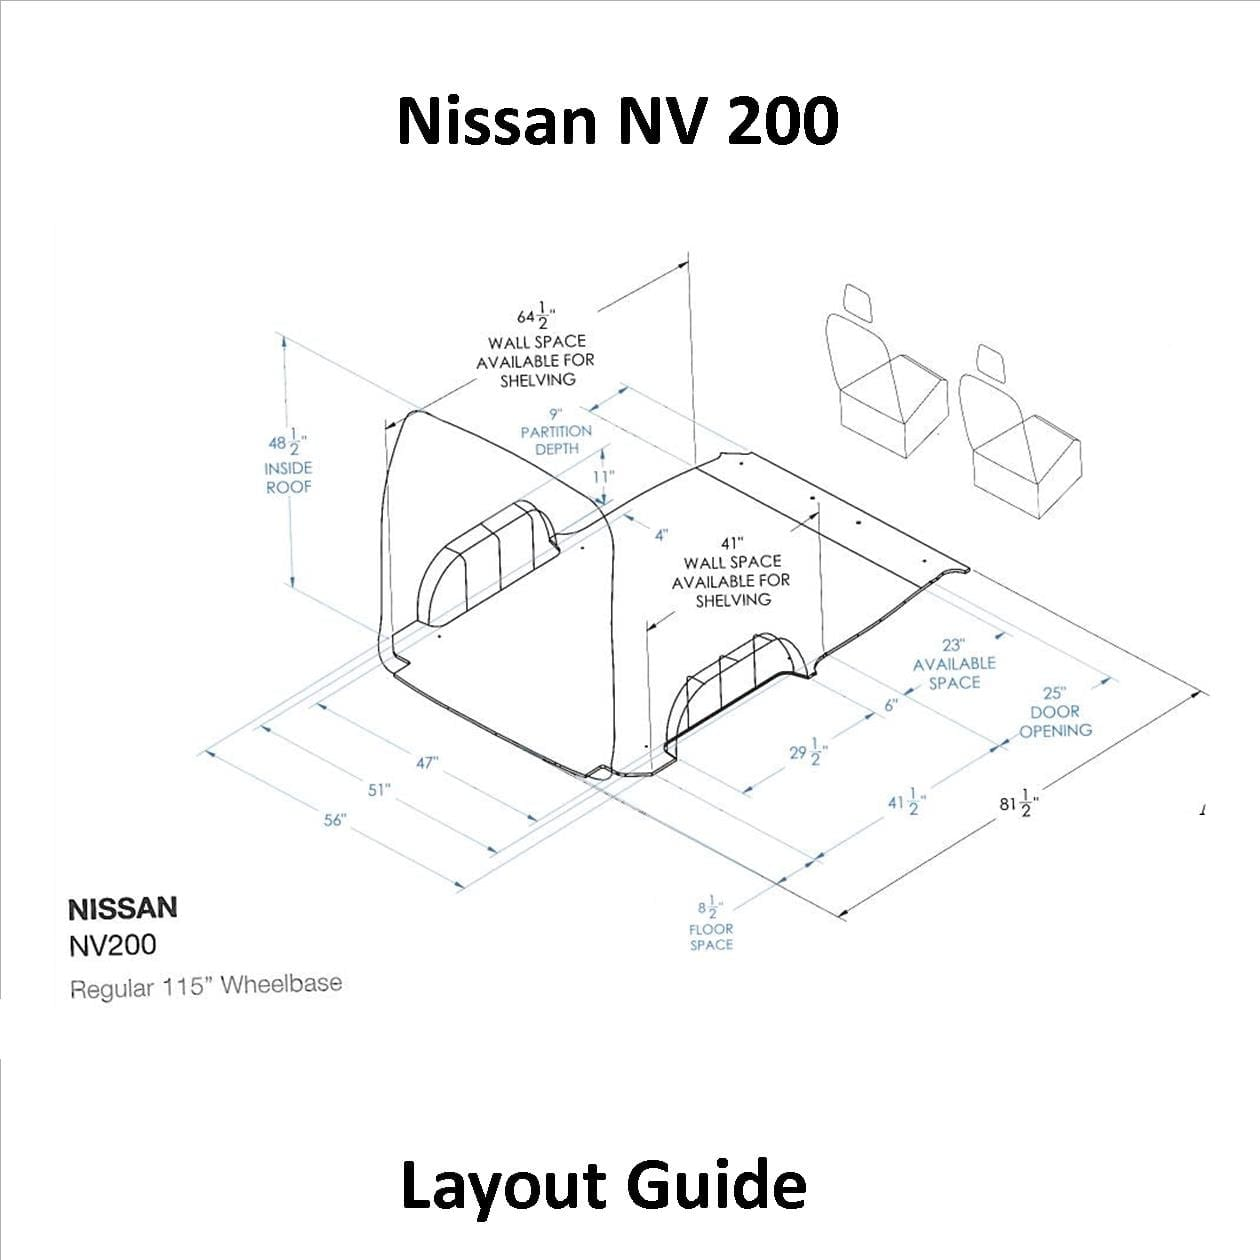 hight resolution of nissan layout guide nissan nv200 u s upfittersinlad truck u0026 van equipment company nissan layout guide